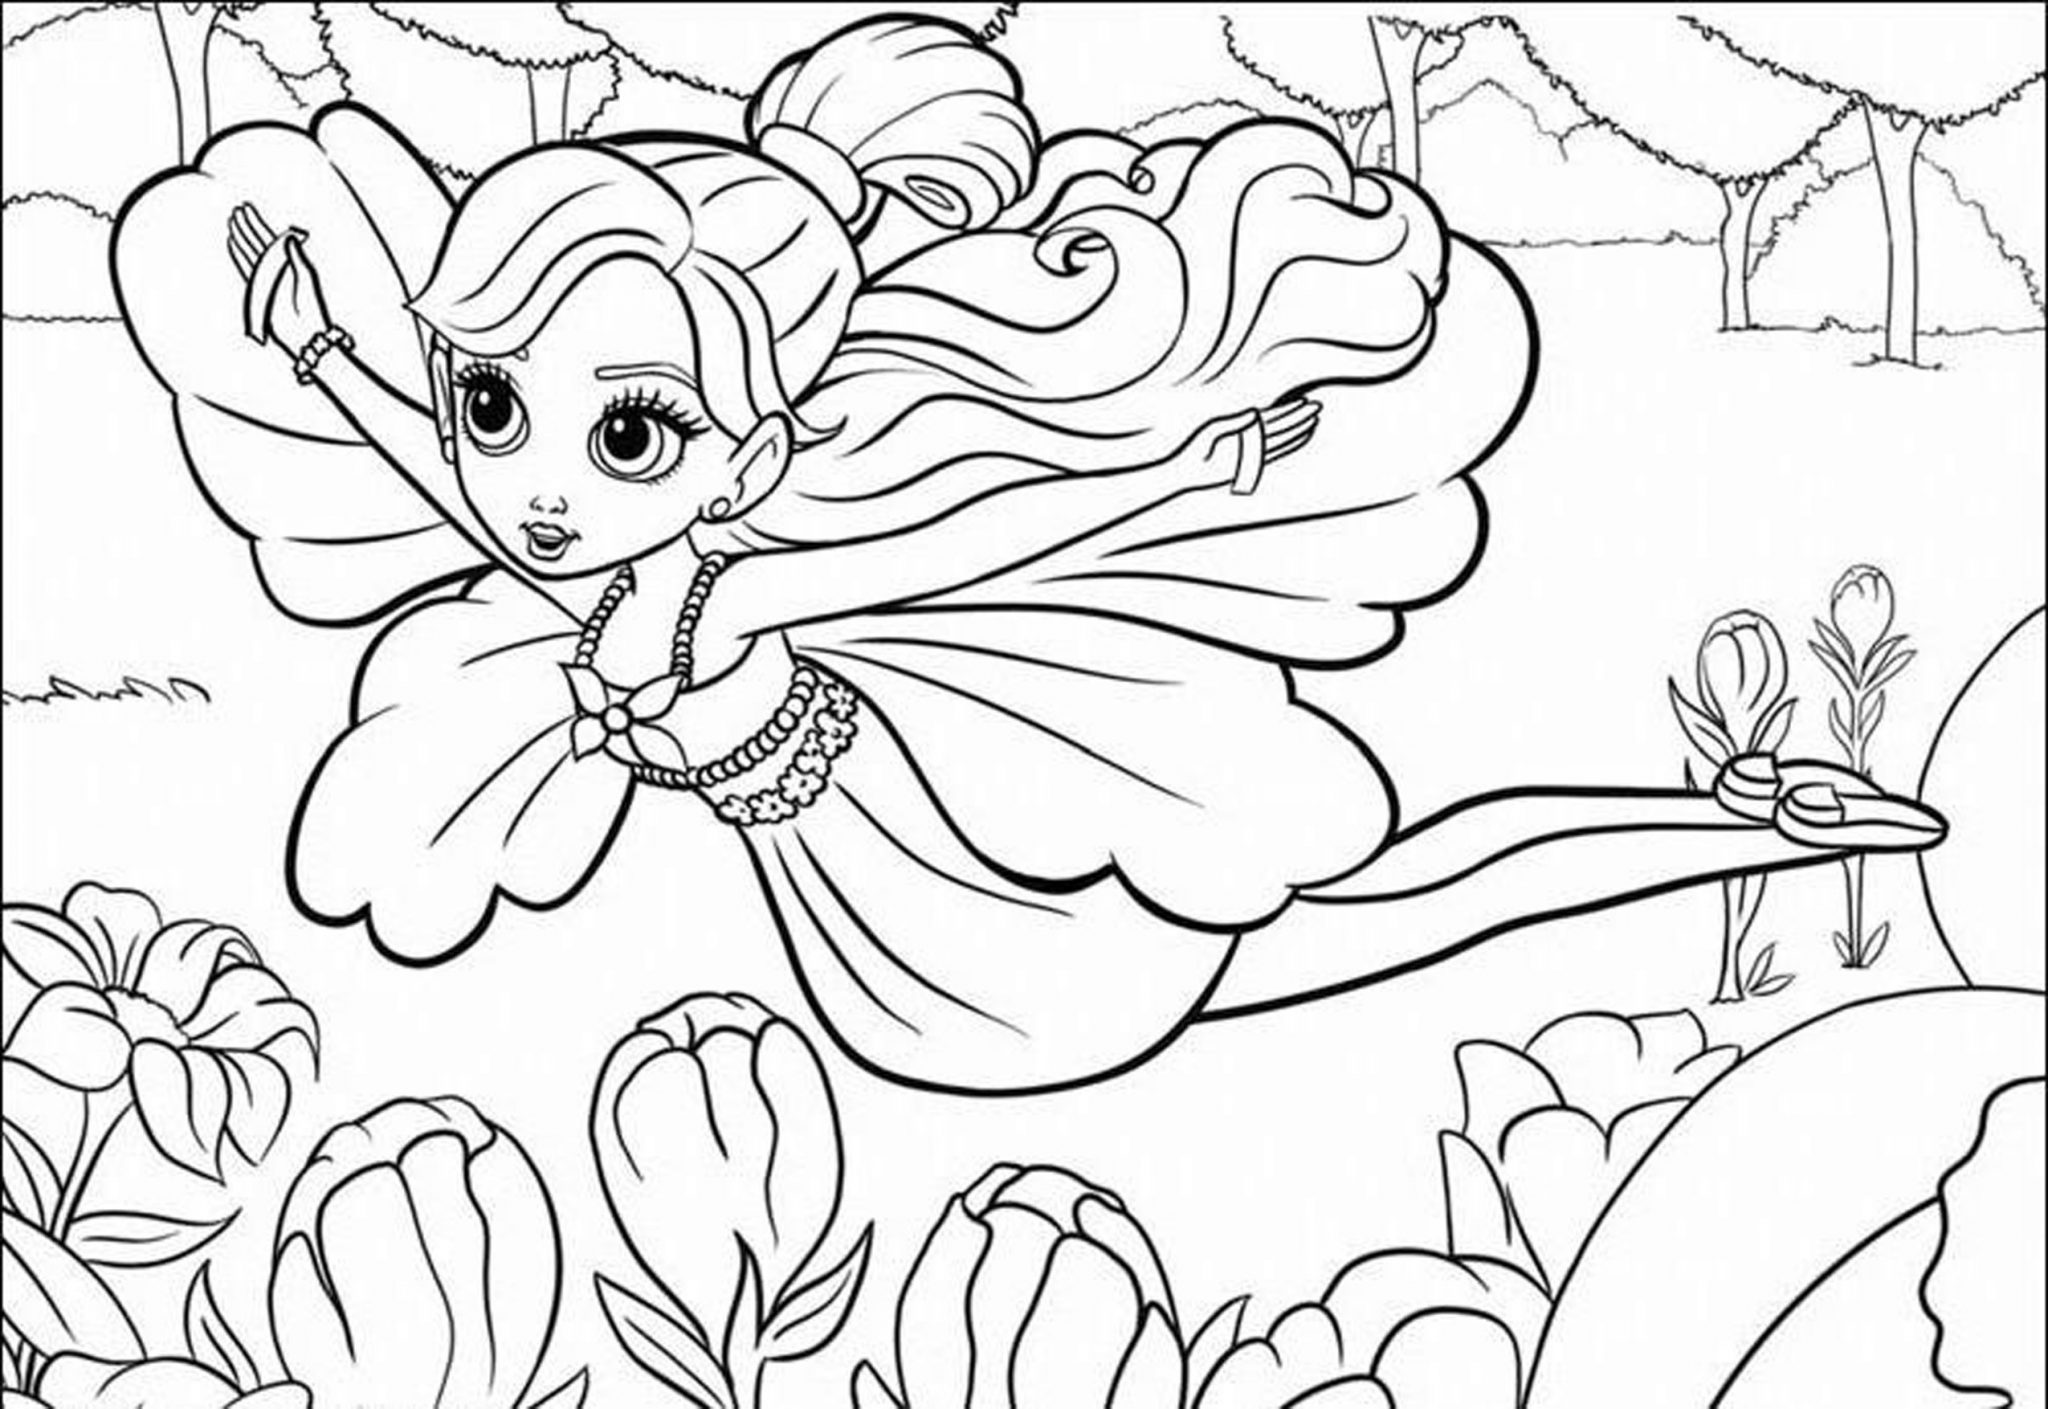 coloring-pages-for-teenagers-girls | | BestAppsForKids.com